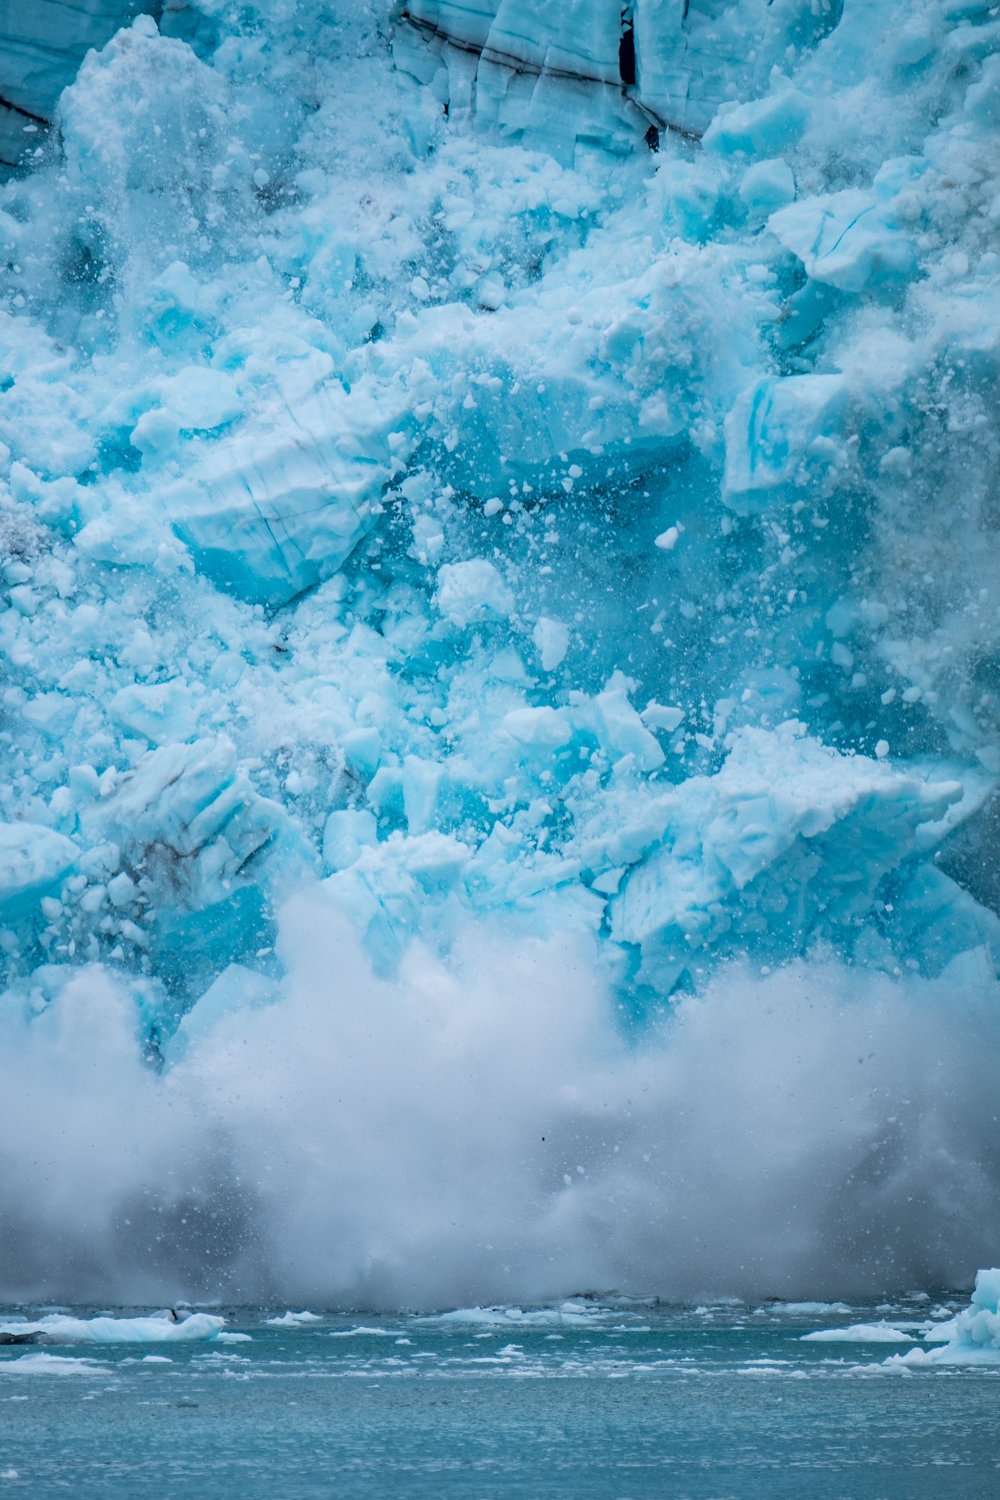 Glacial ice calving (breaking and falling) from Margerie Glacier.